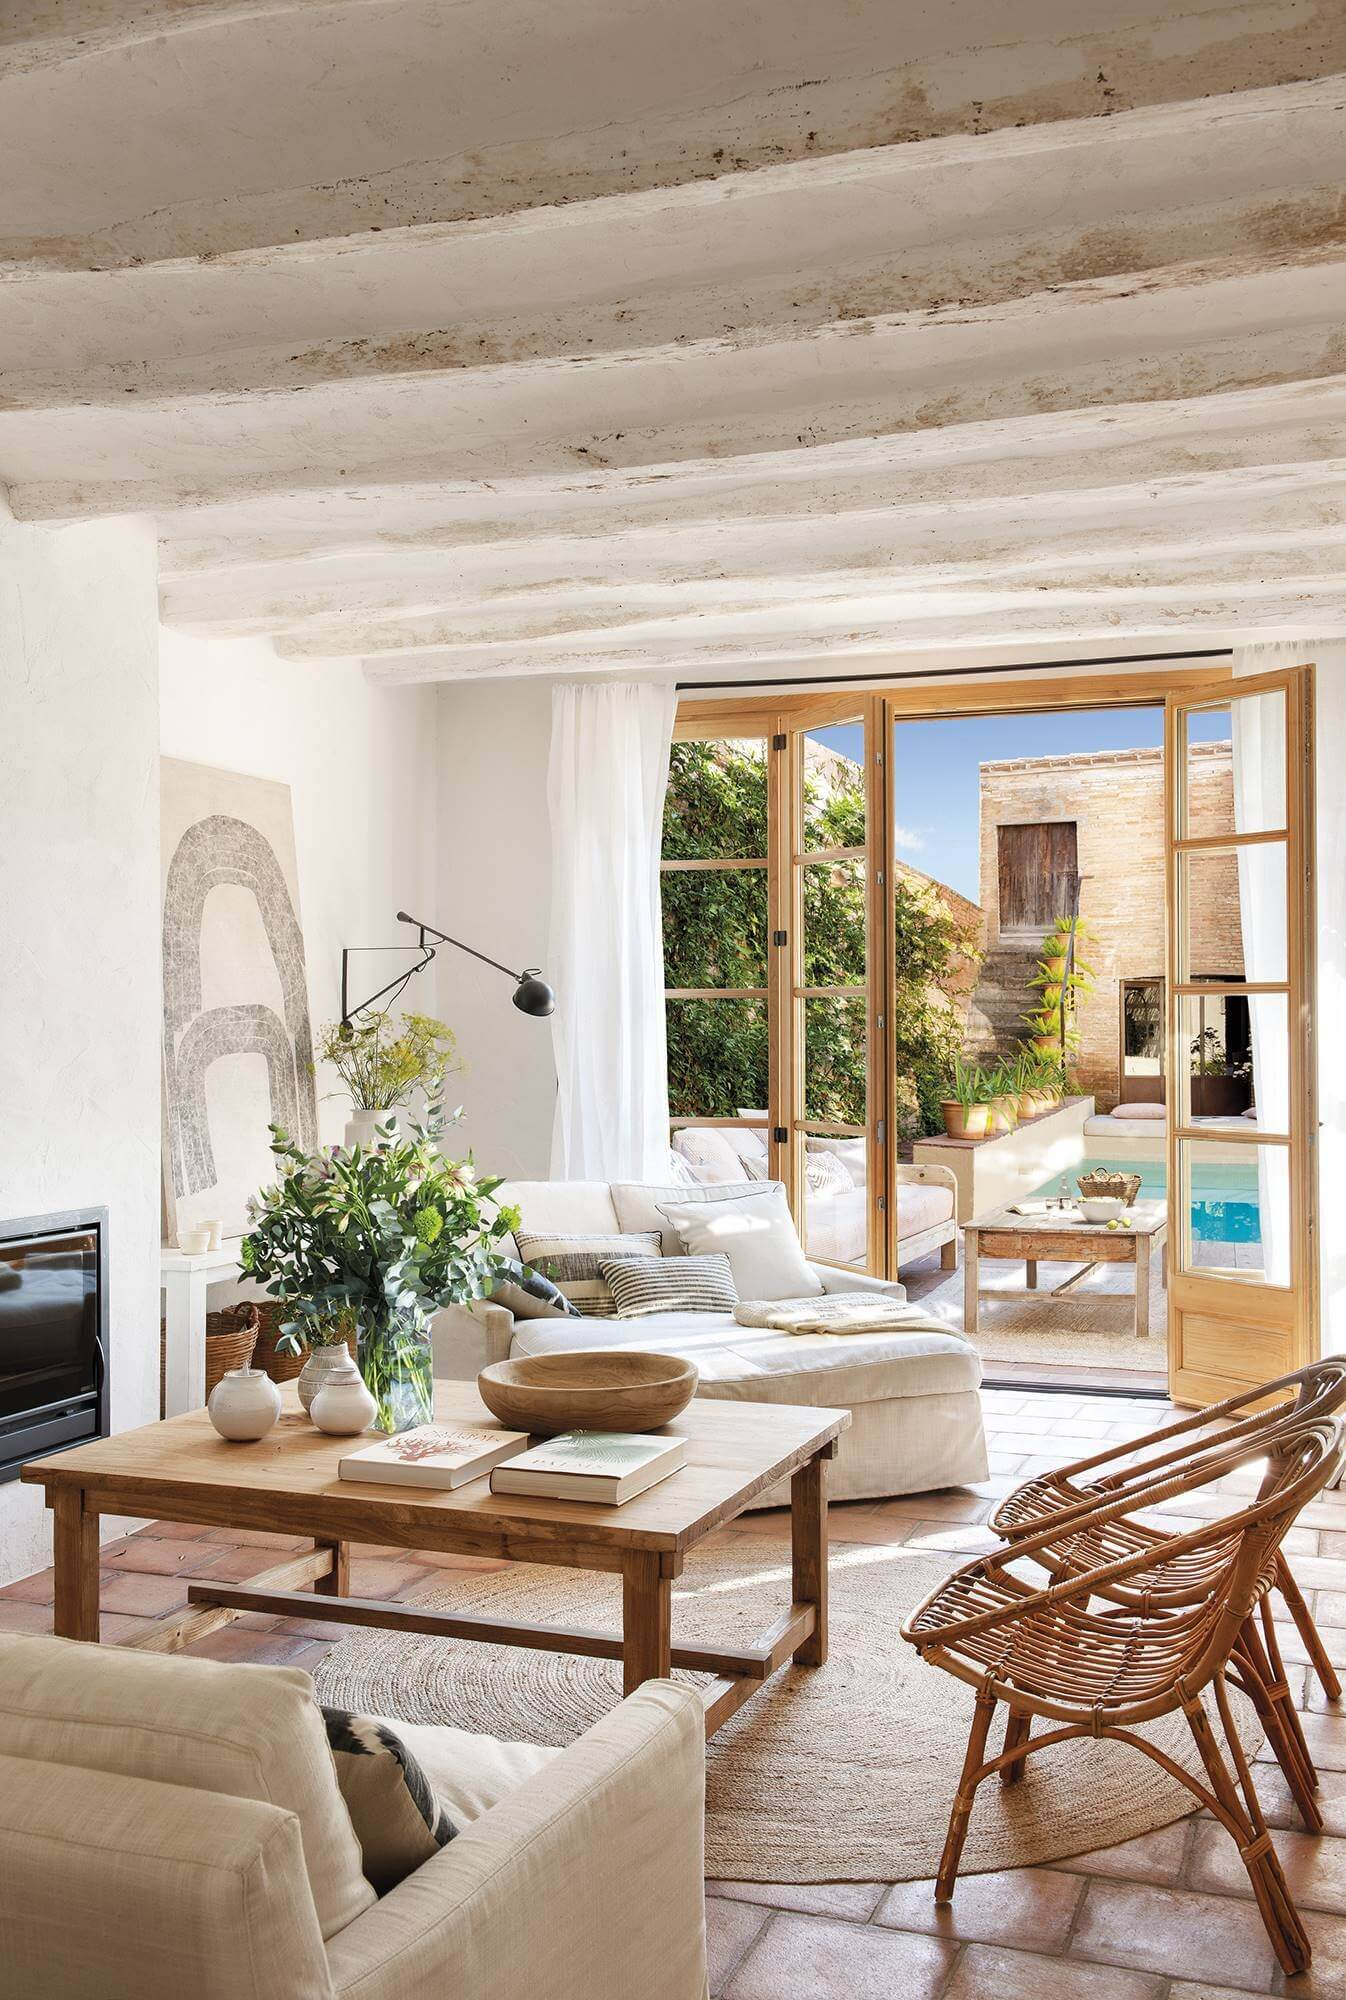 Natural Country Style in a 19th-Century Townhouse in Barcelona